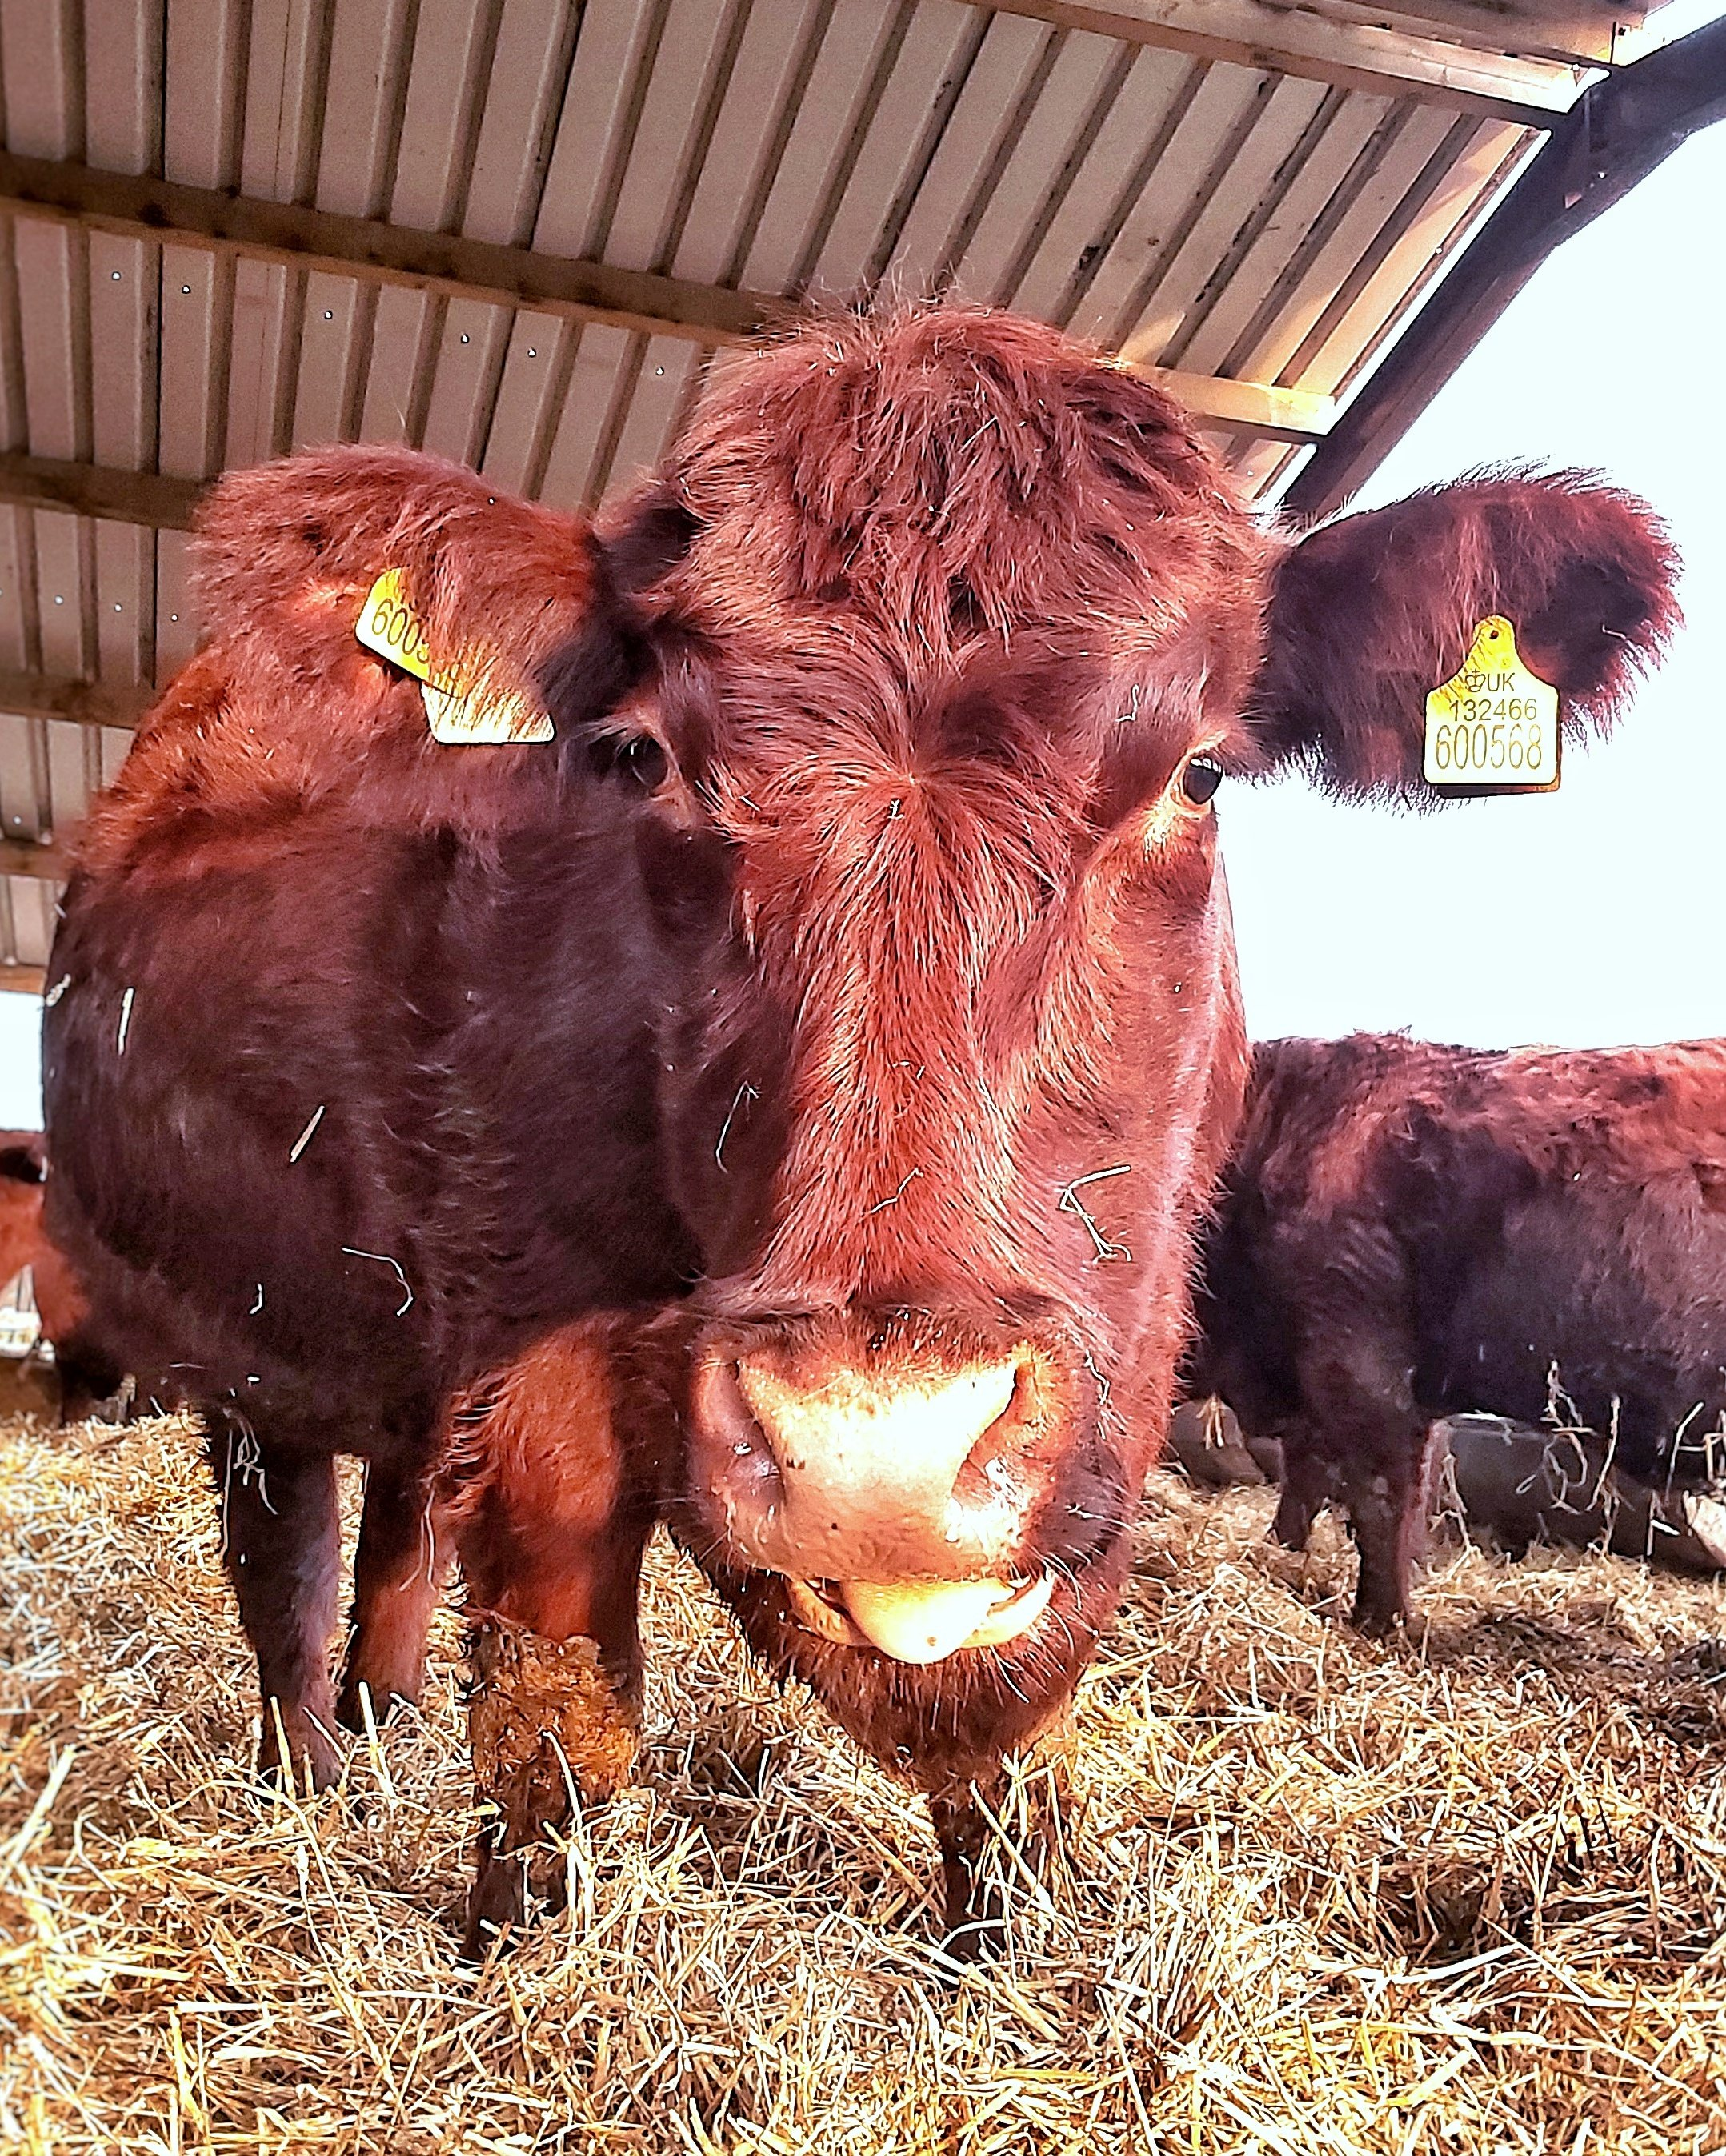 Mahogany coloured, very large, Lincoln red cow, standing in a straw bedded shed with her tongue slightly poking out.